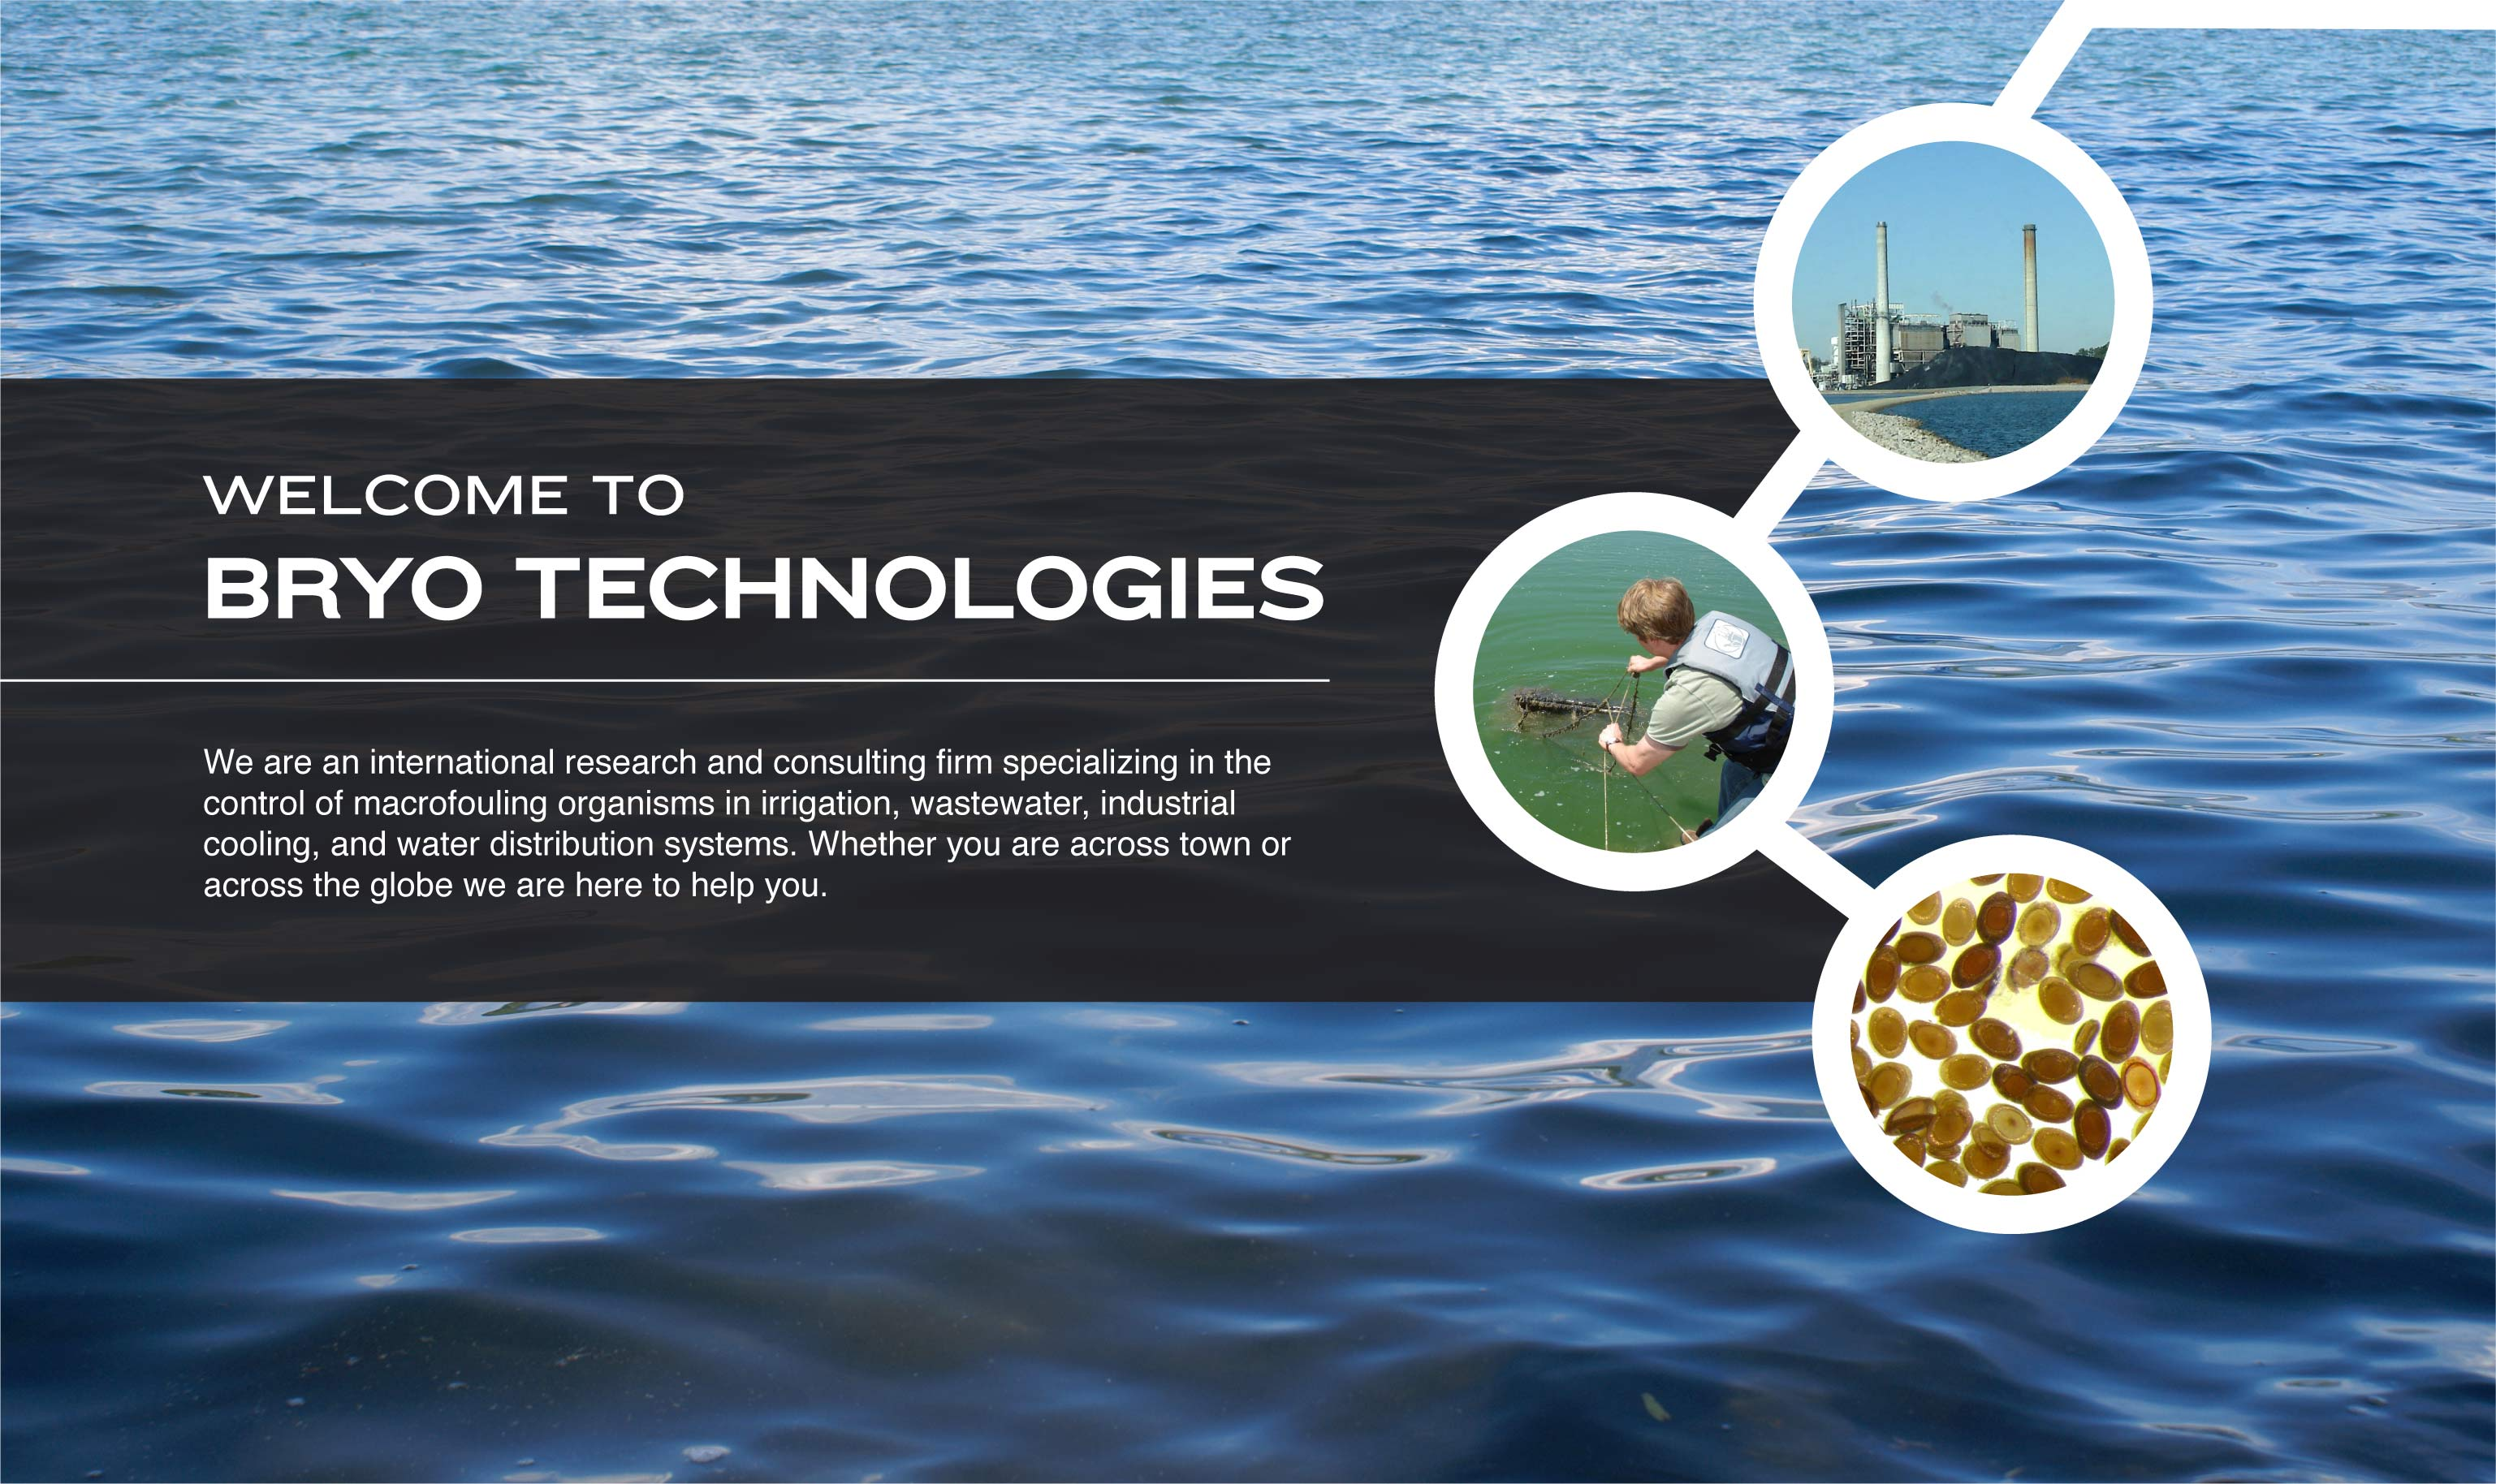 WELCOME TO BRYO TECHNOLOGIES : We are an international research and consulting firm specializing in the control of macrofouling organisms in irrigation, wastewater, industrial cooling, and water distribution systems. Whether you are across town or across the globe we are here to help you.